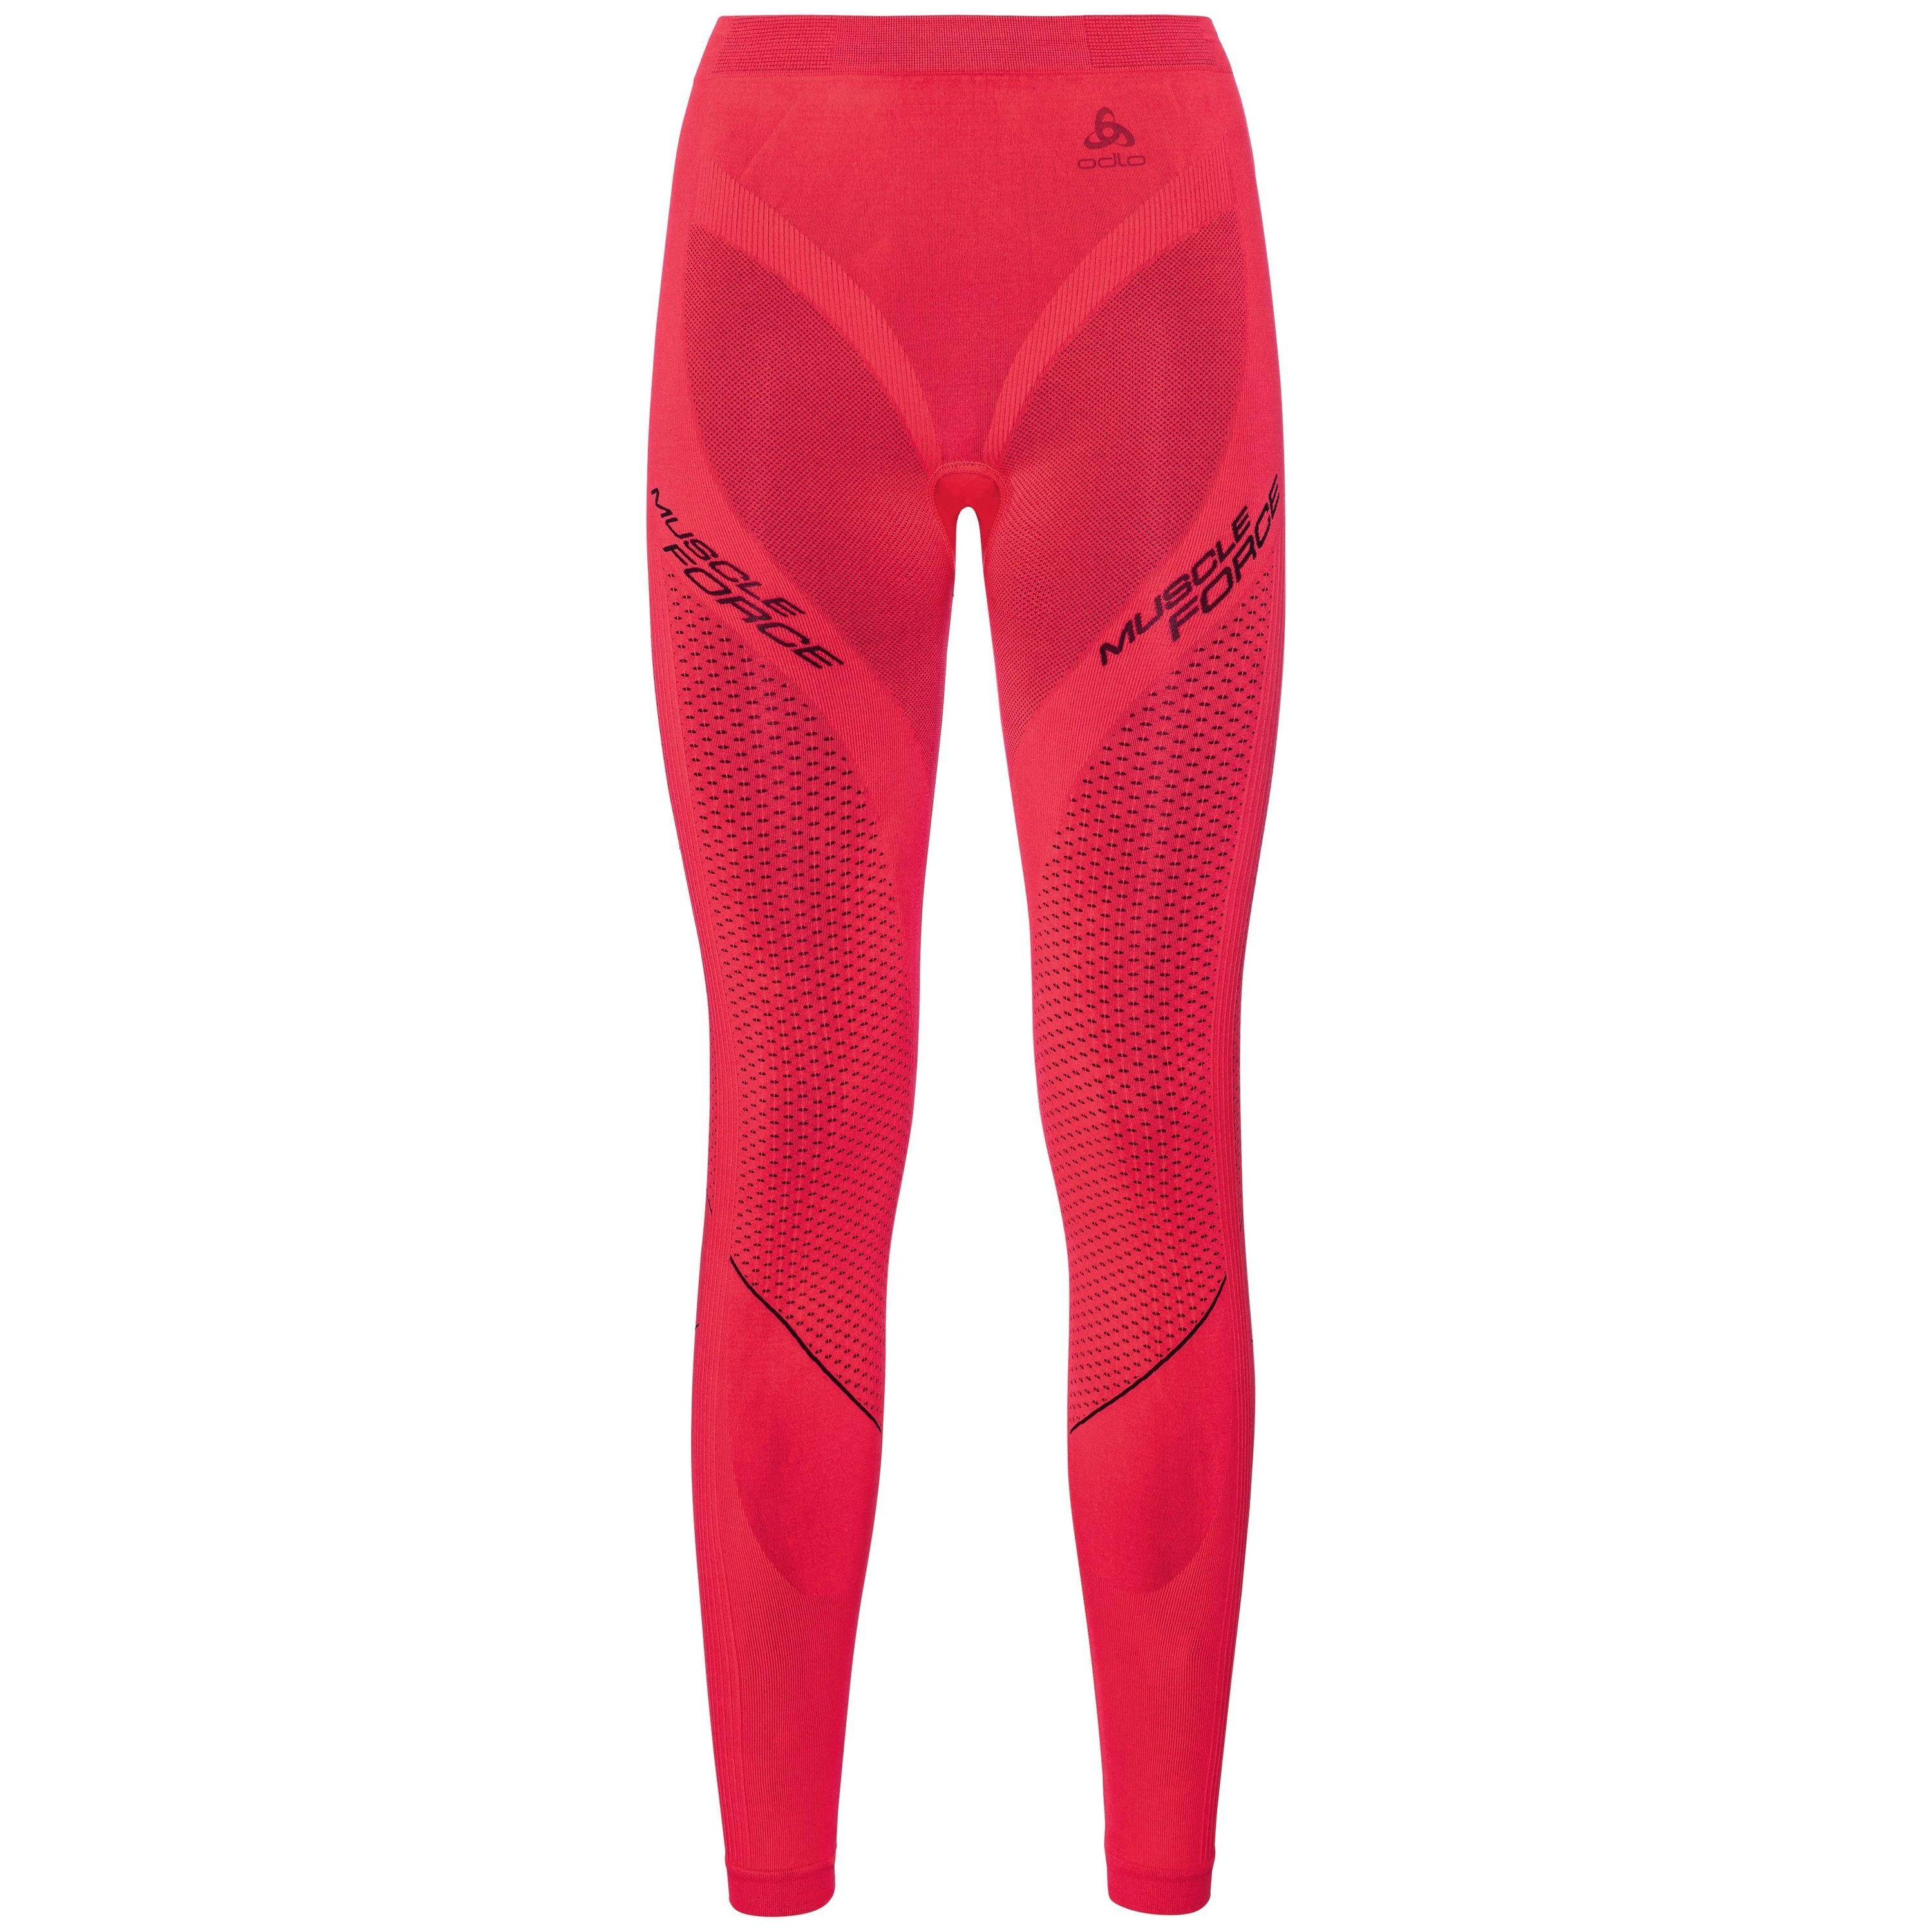 Odlo SVS Bas collant Performance MUSCLE FORCE RUNNING Warm diva pink - odyssey gray taille: XS